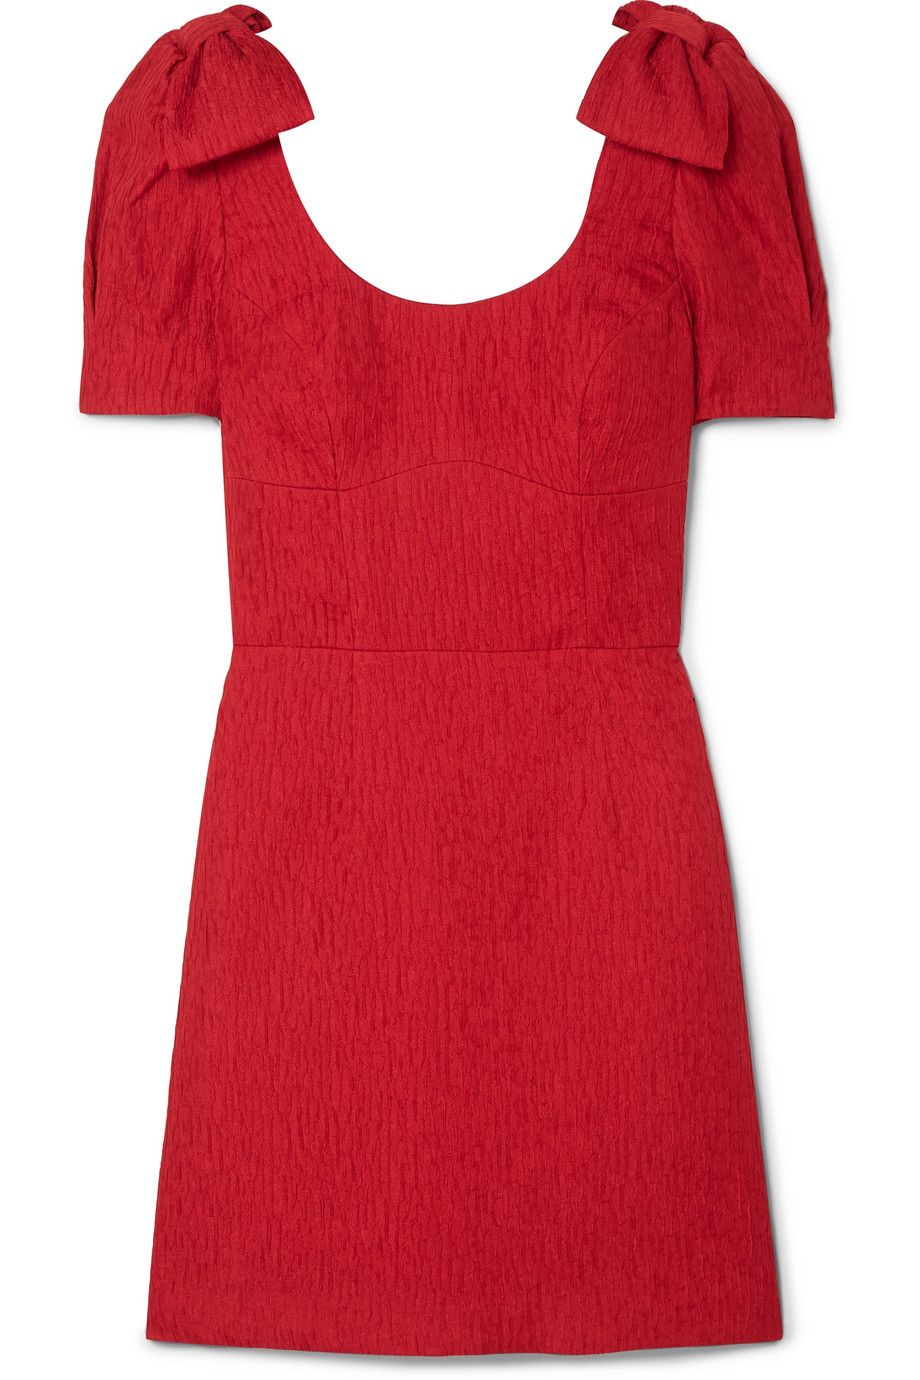 """Harlow Mini Dress Rebecca Vallance net-a-porter.com $212.50 SHOP NOW """"I'm a sucker for bows and a big believer in having one nice, ladylike dress for special occasions. The nice thing about this red dress is that it's season-neutral and relatively event versatile: the rich red is good for fall, spring, summer and even a fancy Valentine's Day date, while the silhouette is appropriate for a cocktail or a daytime wedding with the right accessories. The bows on the sleeves give dress a girly flair that's grown up and not too outlandish. They're what set this dress apart. I'm not the type who could ever afford to pay the full $425 for this dress. But half off? I'll take it as a special treat.""""— Alyssa Bailey, News Editor"""